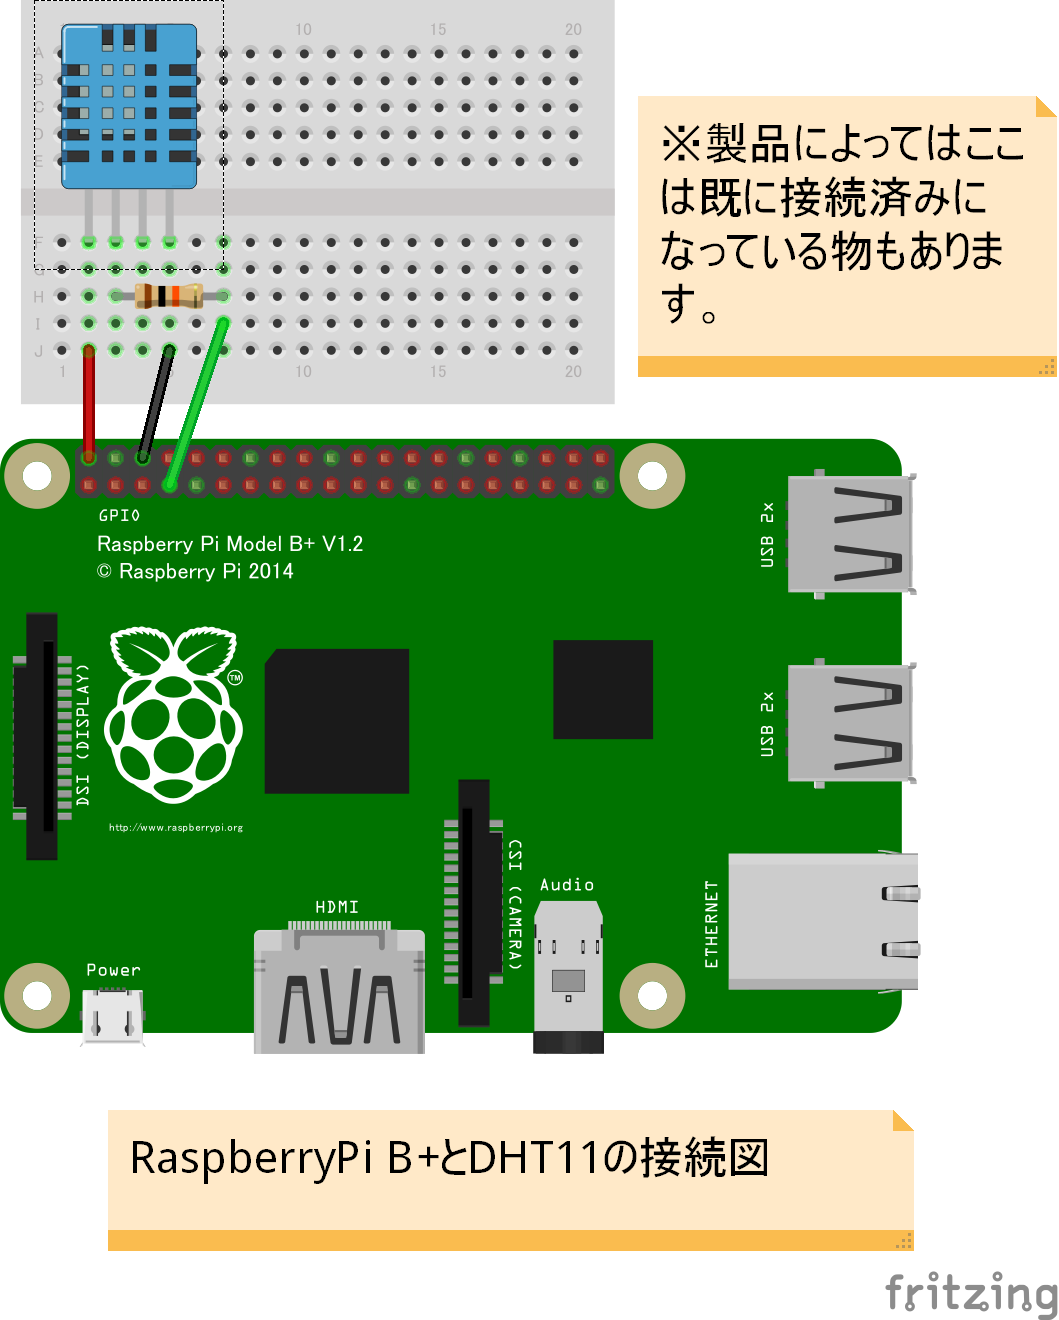 Raspberry_DHT11_ブレッドボード.png